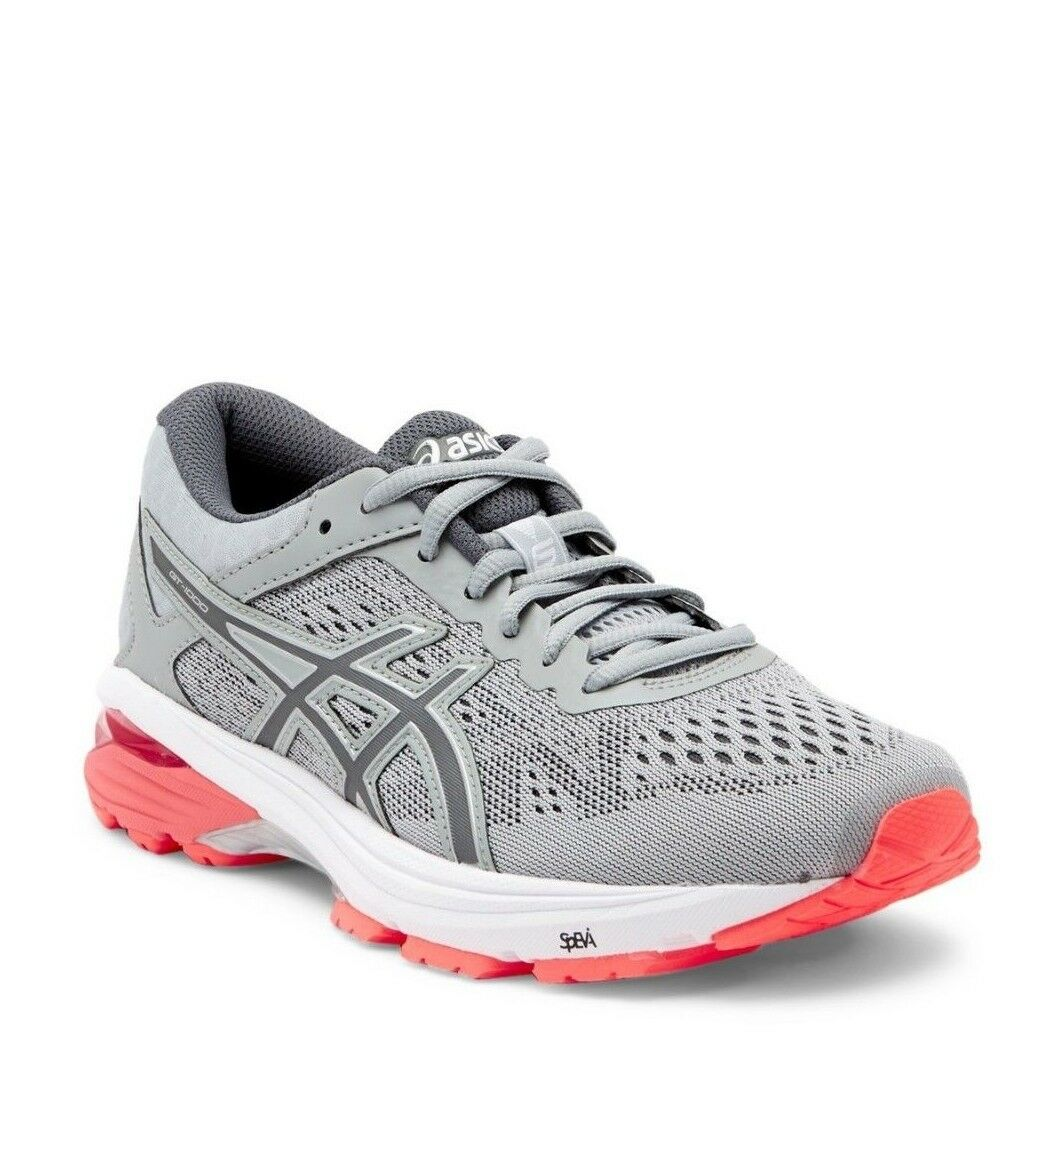 ASICS GT-1000 Sneaker Mid Grey Carbon Flash Flash Flash Coral Size 8.5D 268ee2